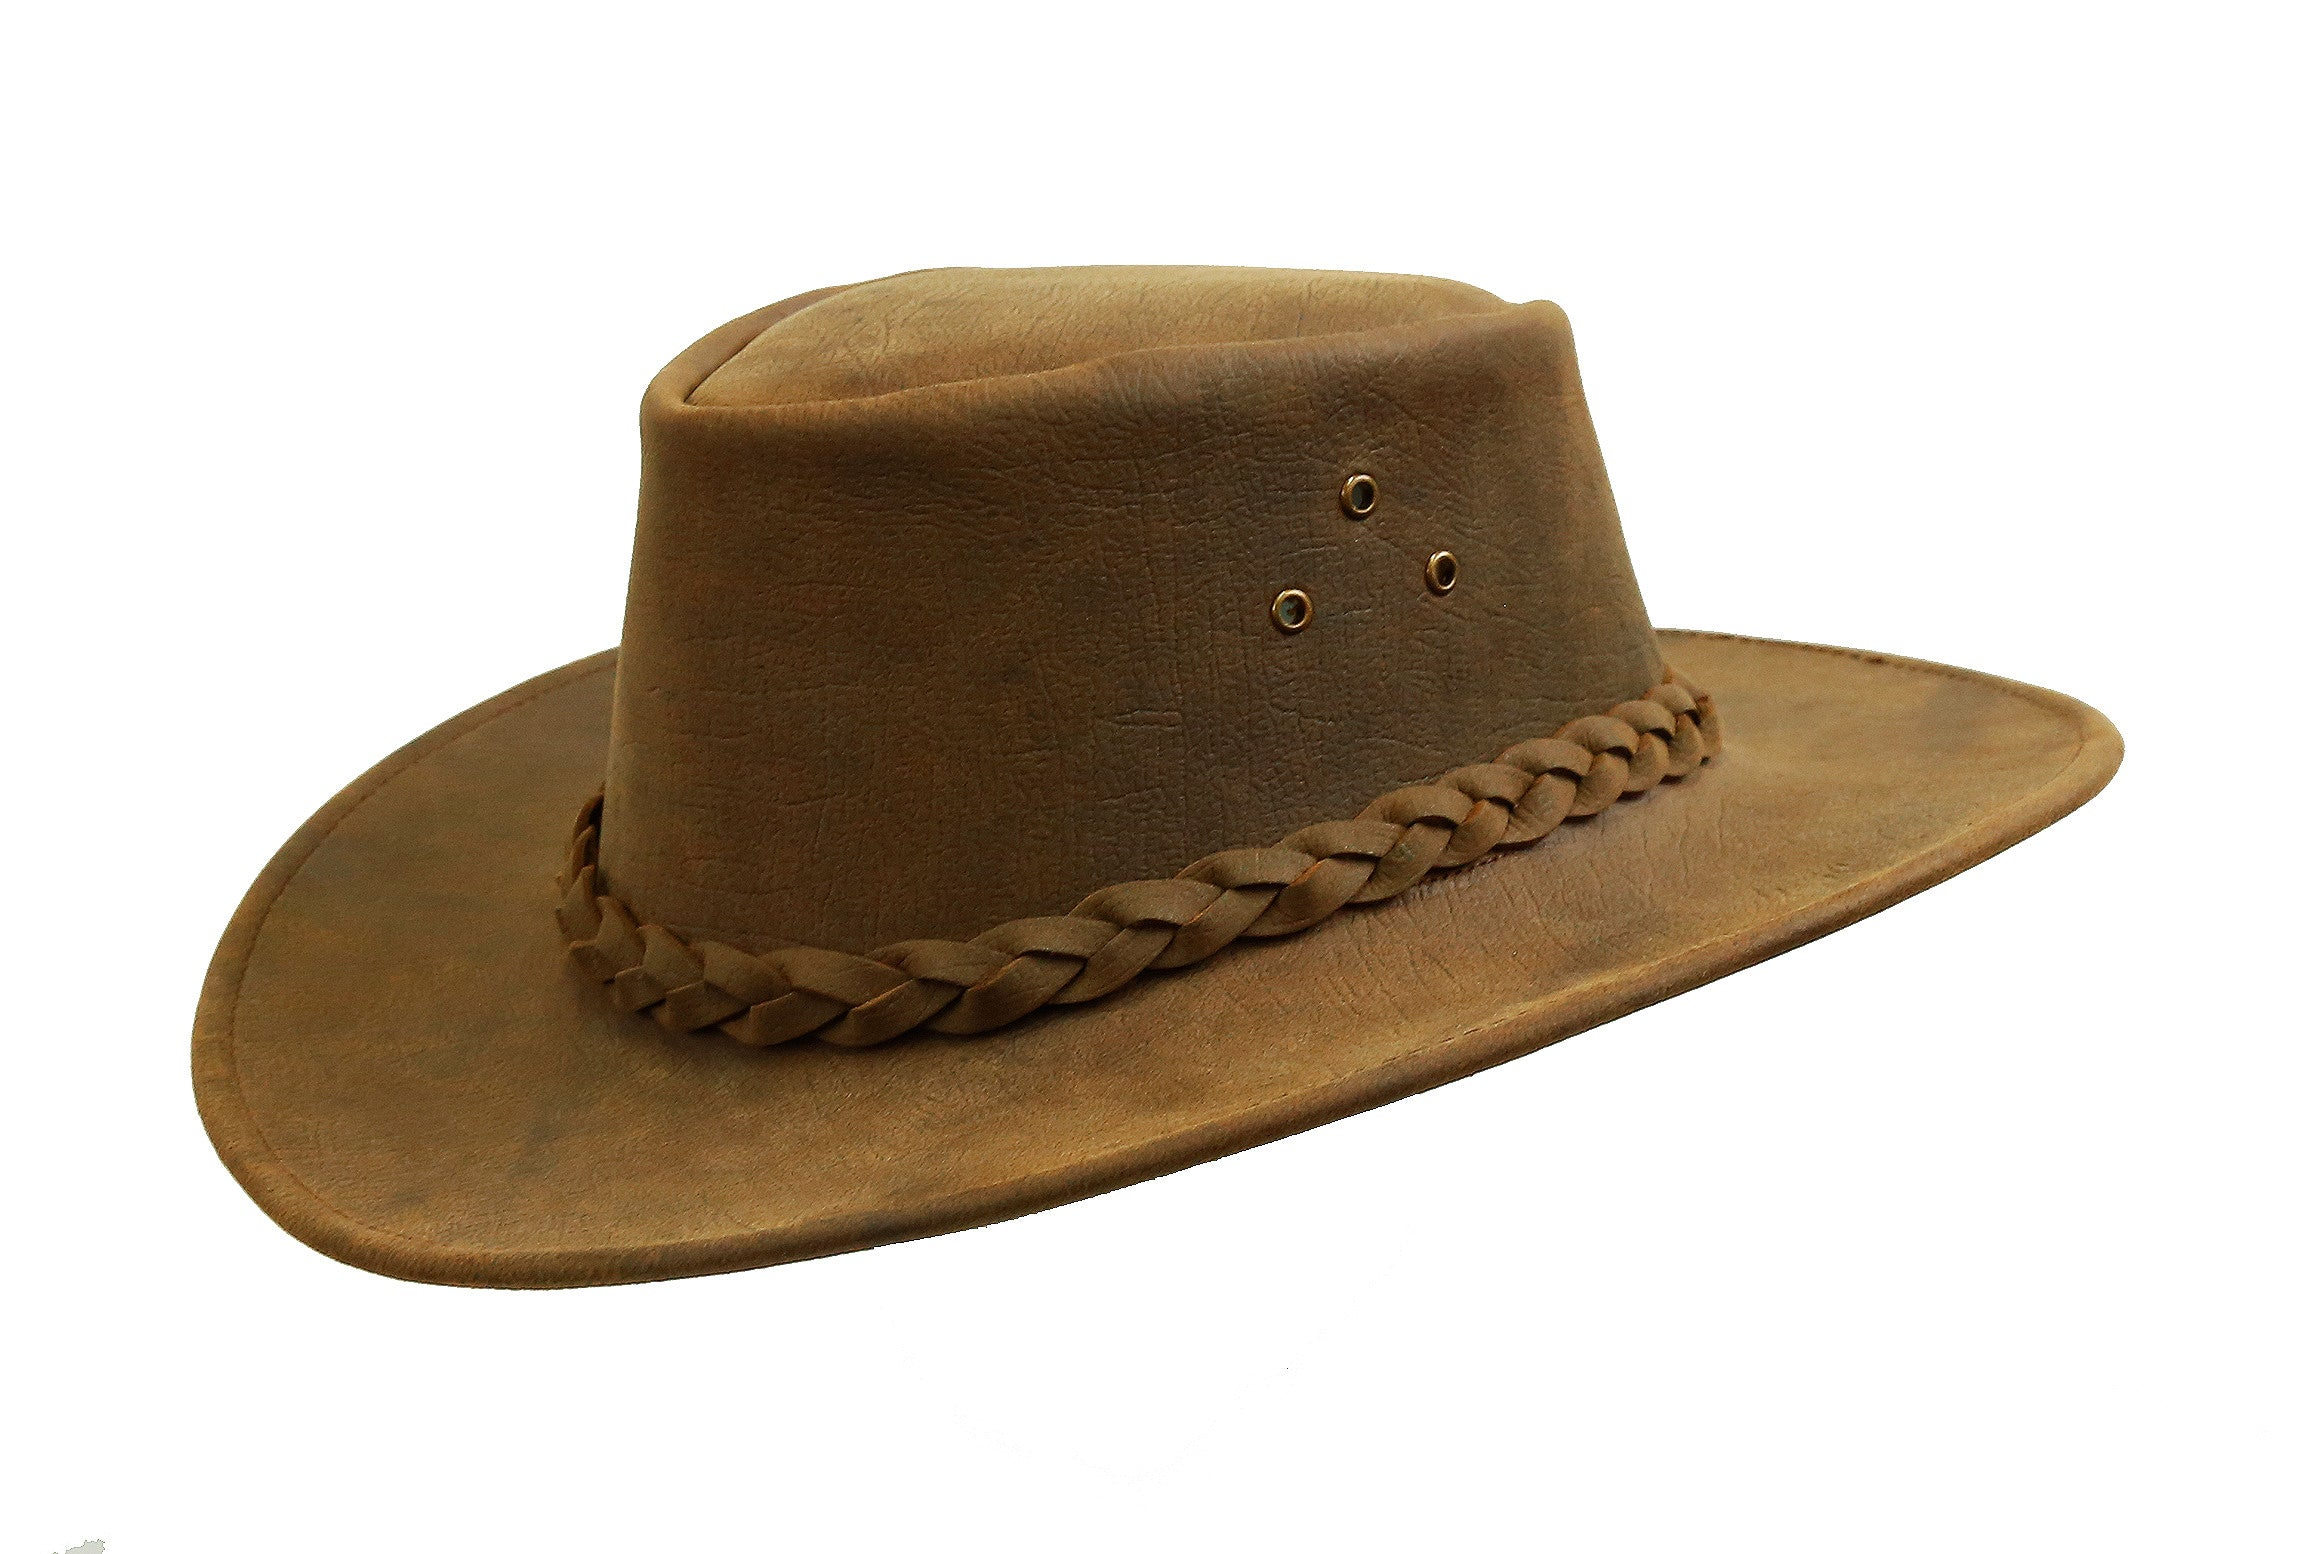 Australian Style Outdoor | Leather hat Bulldog made of strong leather | Weatherproof - OUT OF AUSTRALIA | Kakadu Traders Australia